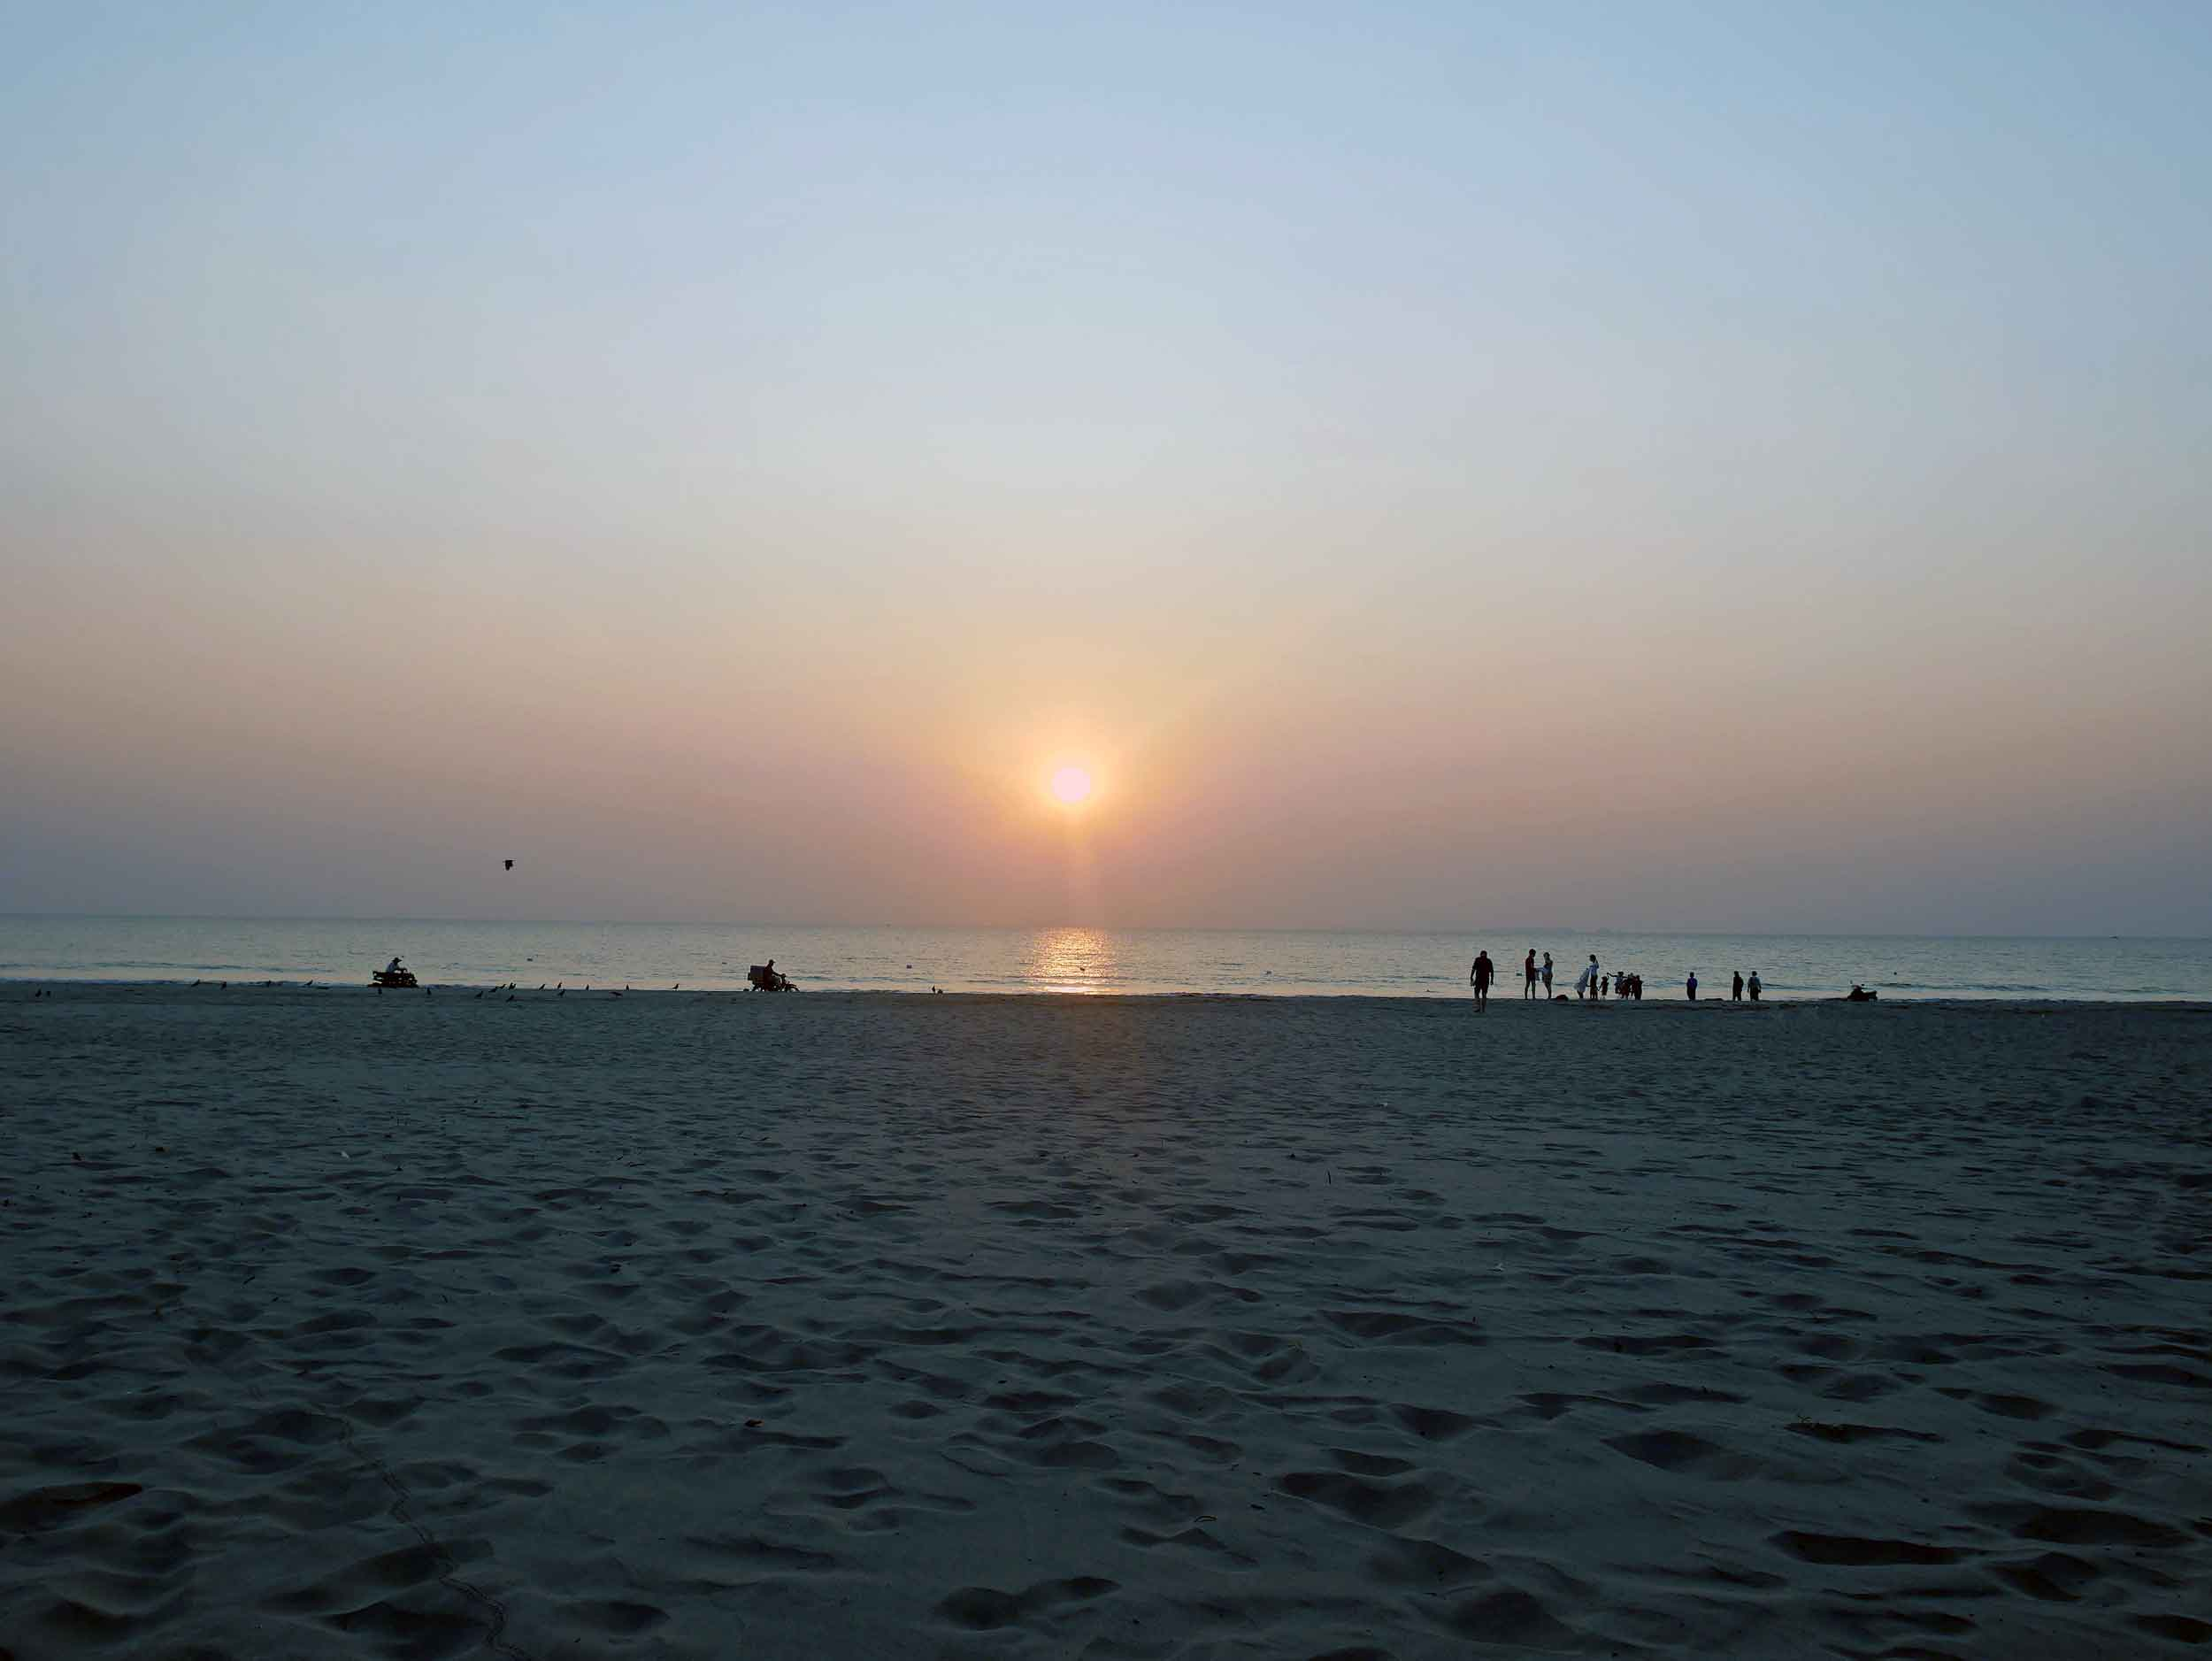 The wide beach of Ngwesaung becomes a sort of highway of activity around sunset.